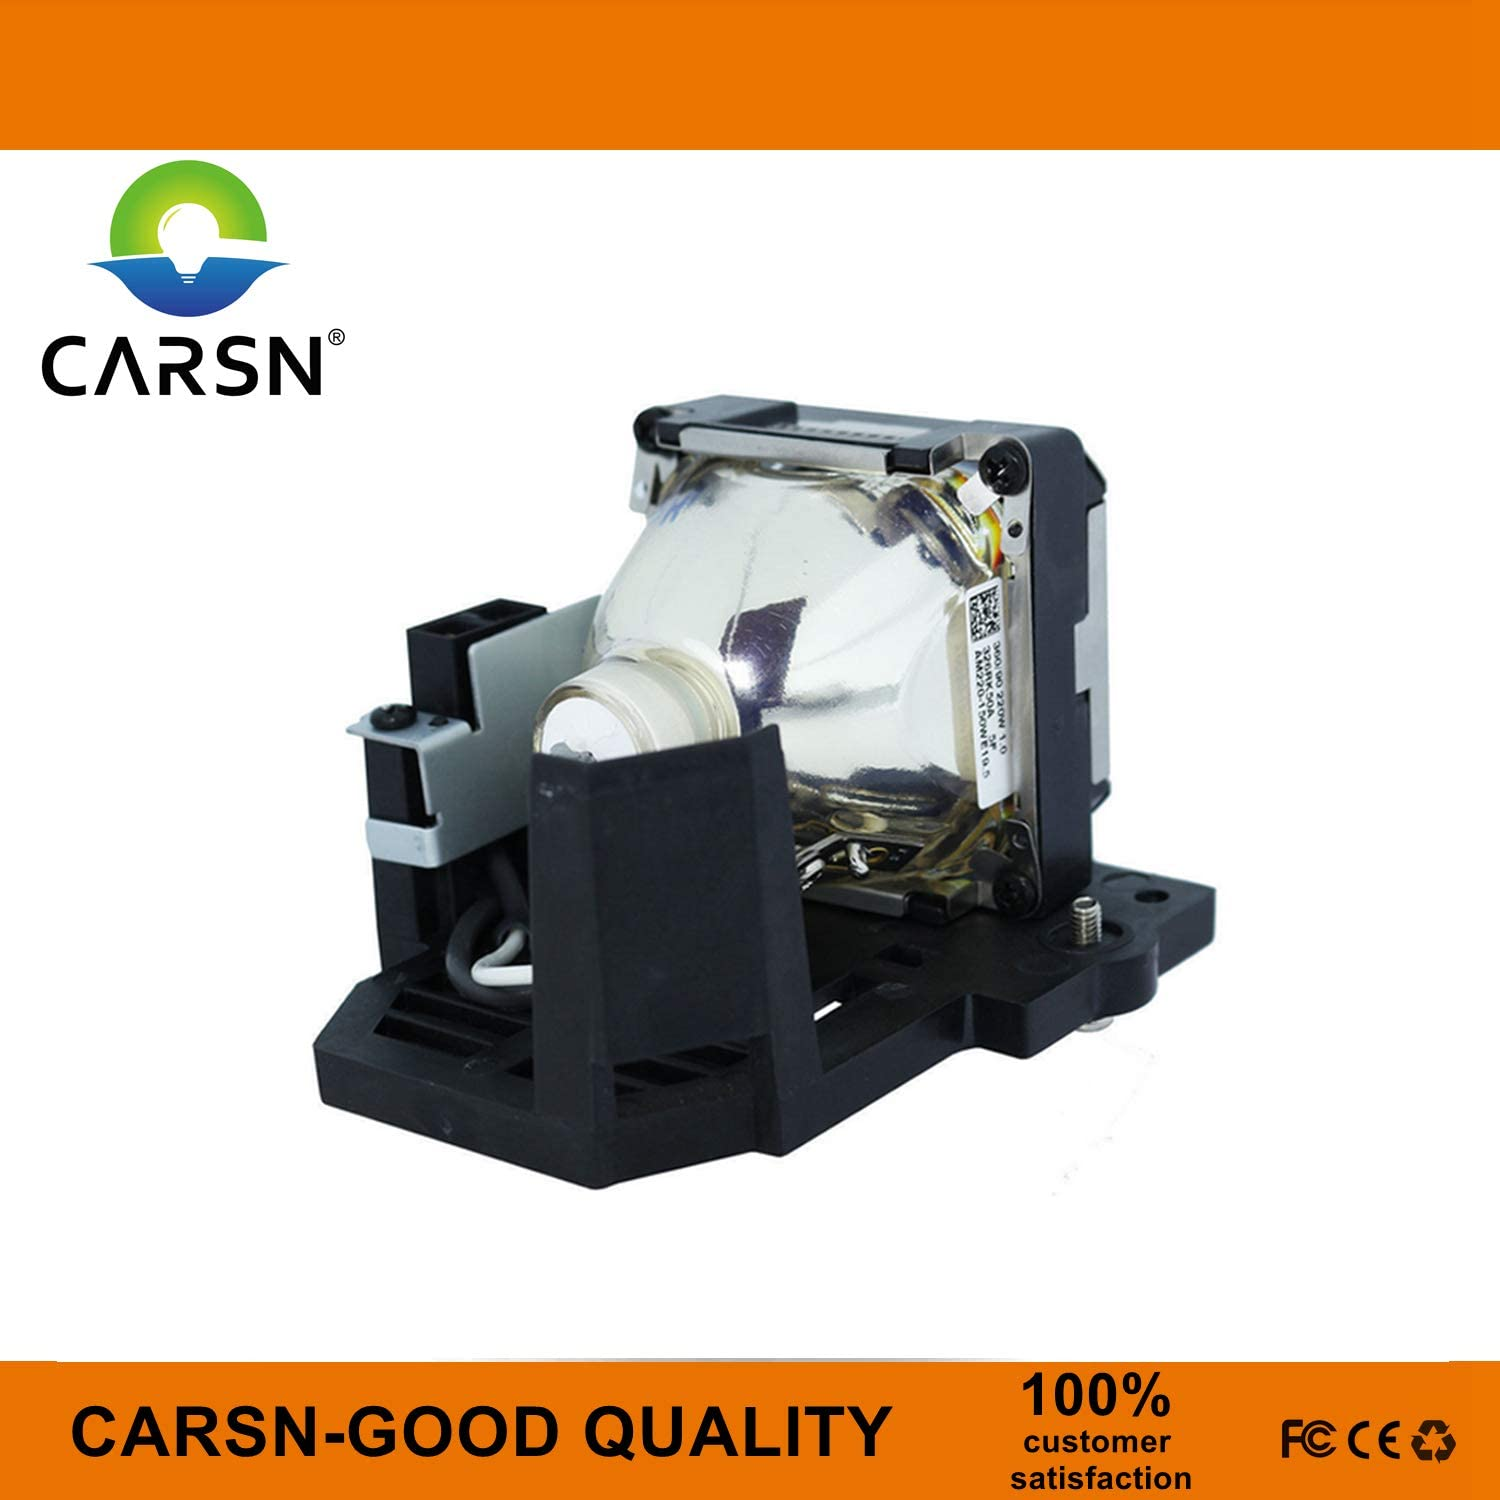 Lamp with Housing by CARSN PK-L2210U PK-L2210UP Replacement Projector Lamp for JVC DLA-F110 DLA-RS40 DLA-RS50 DLA-RS60 DLA-X3 DLA-X7